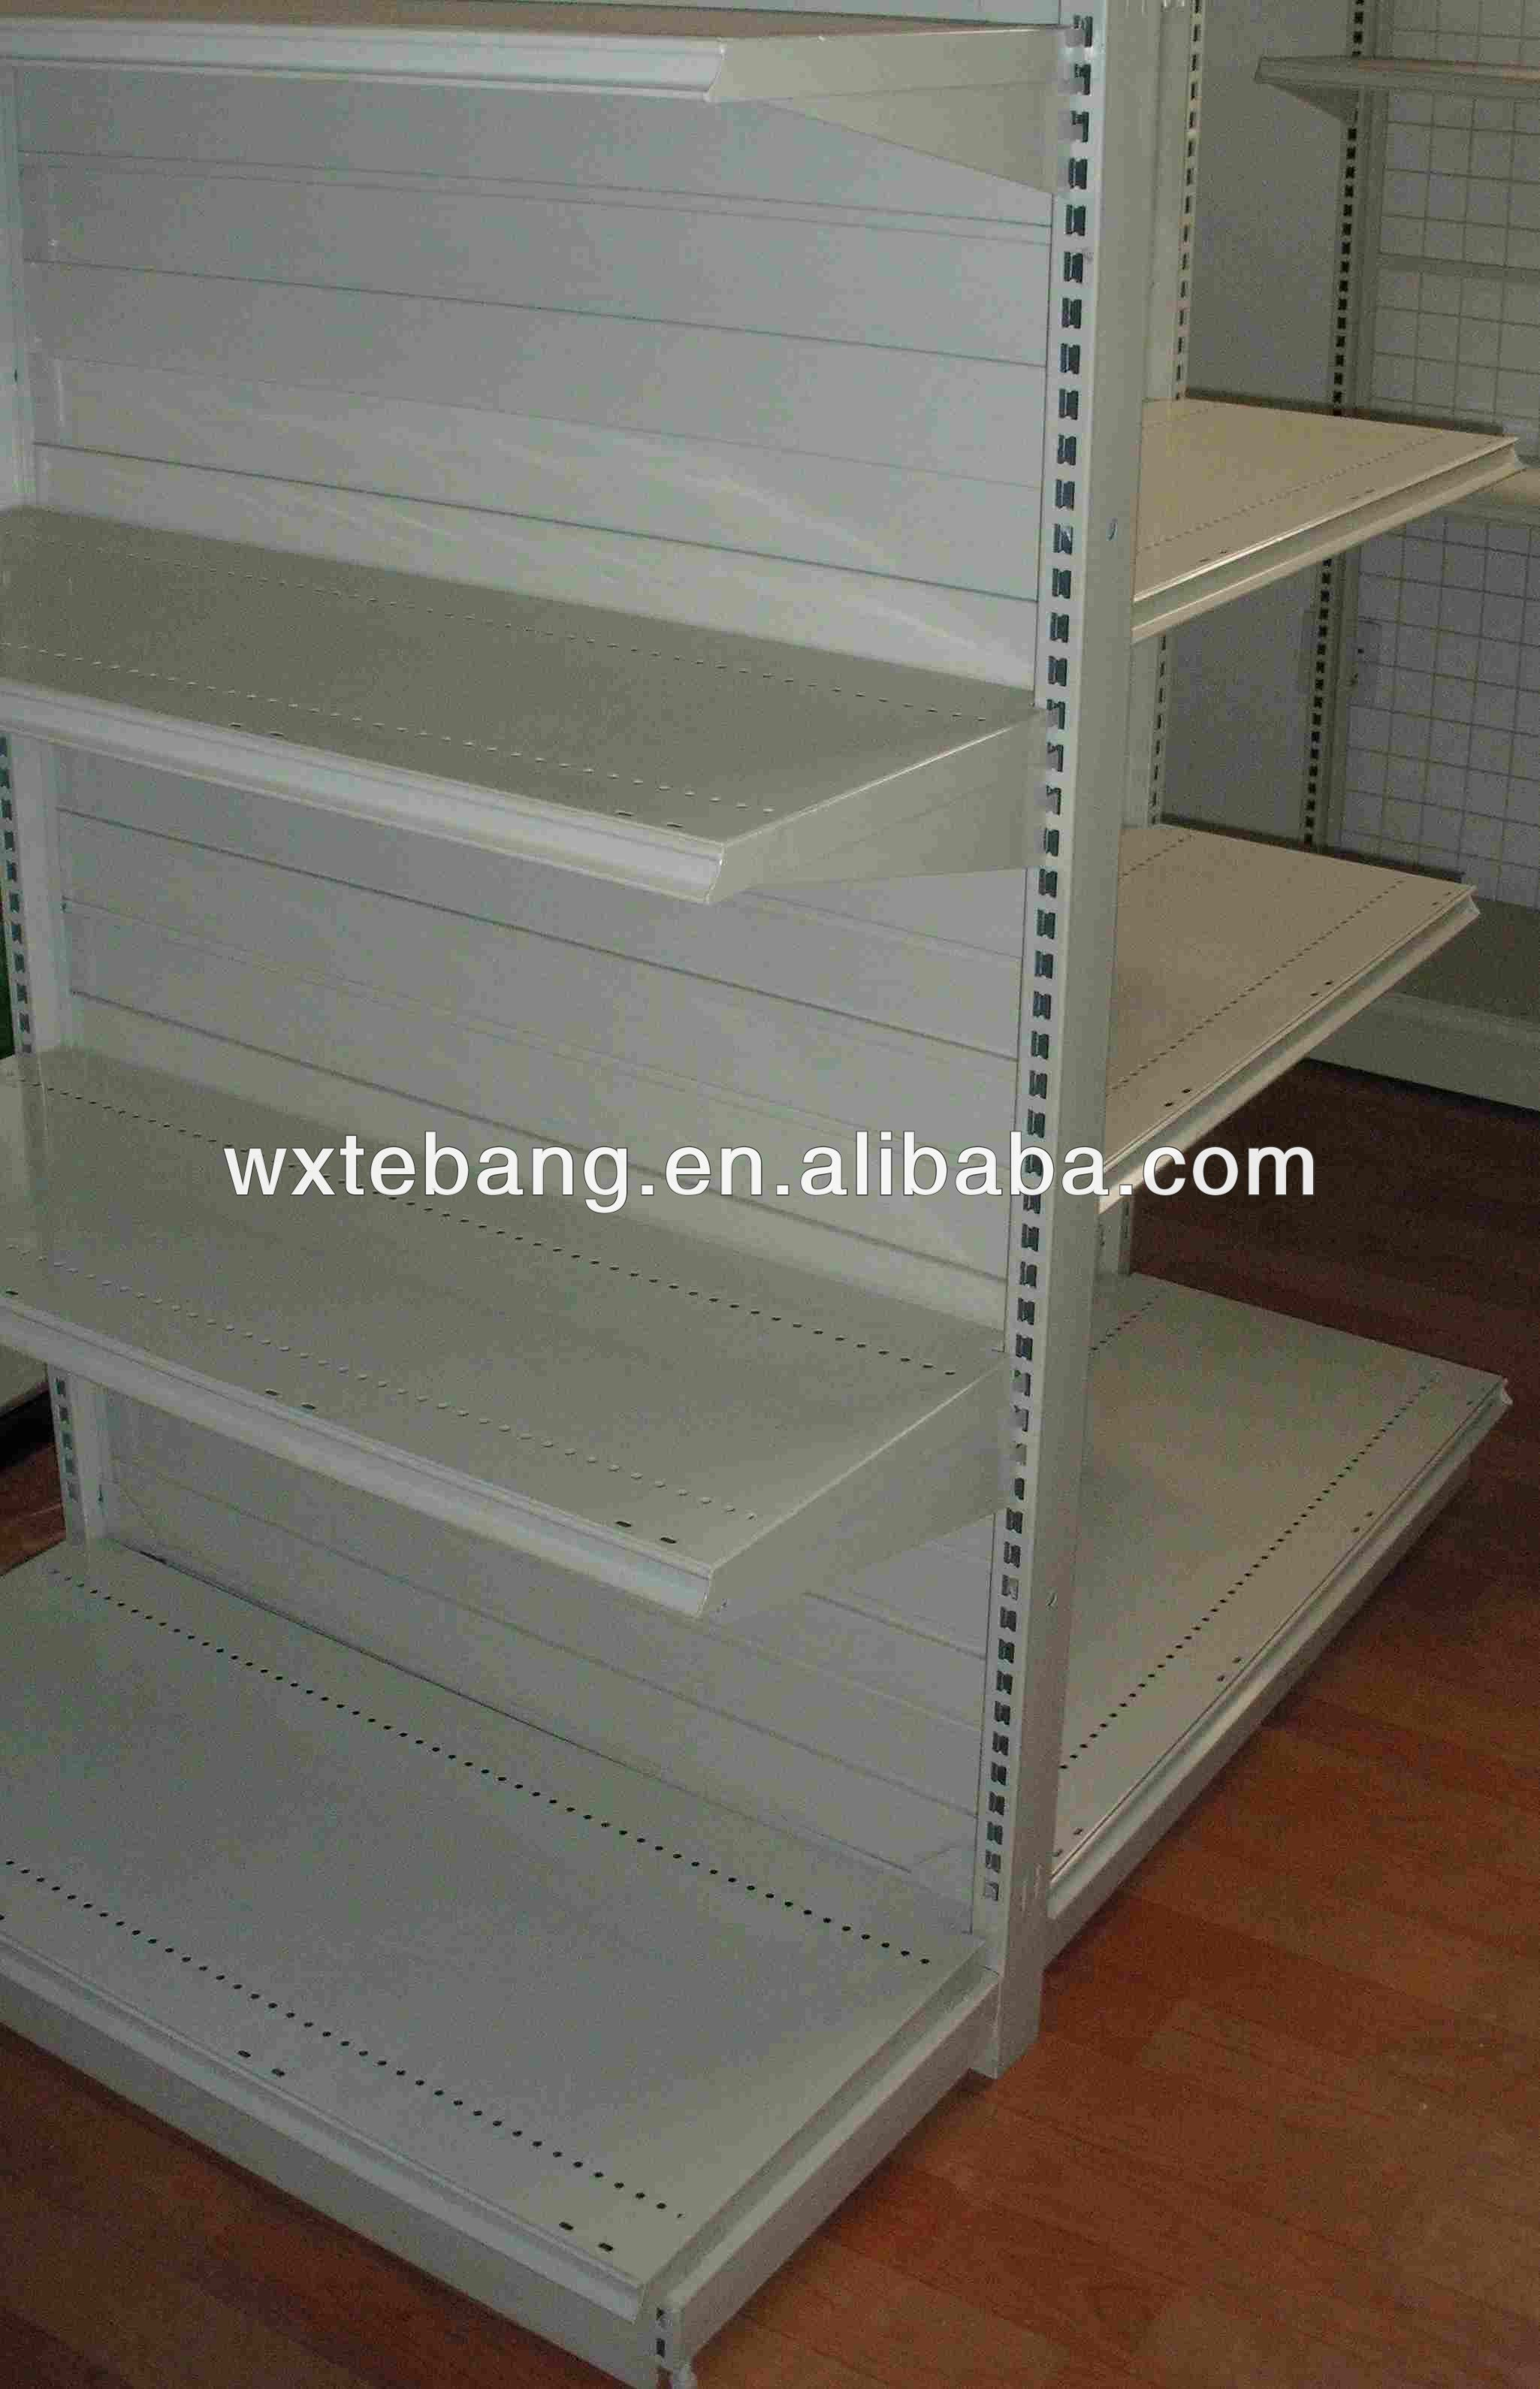 Used Supermarket Shelves For Sale, Used Supermarket Shelves For ...